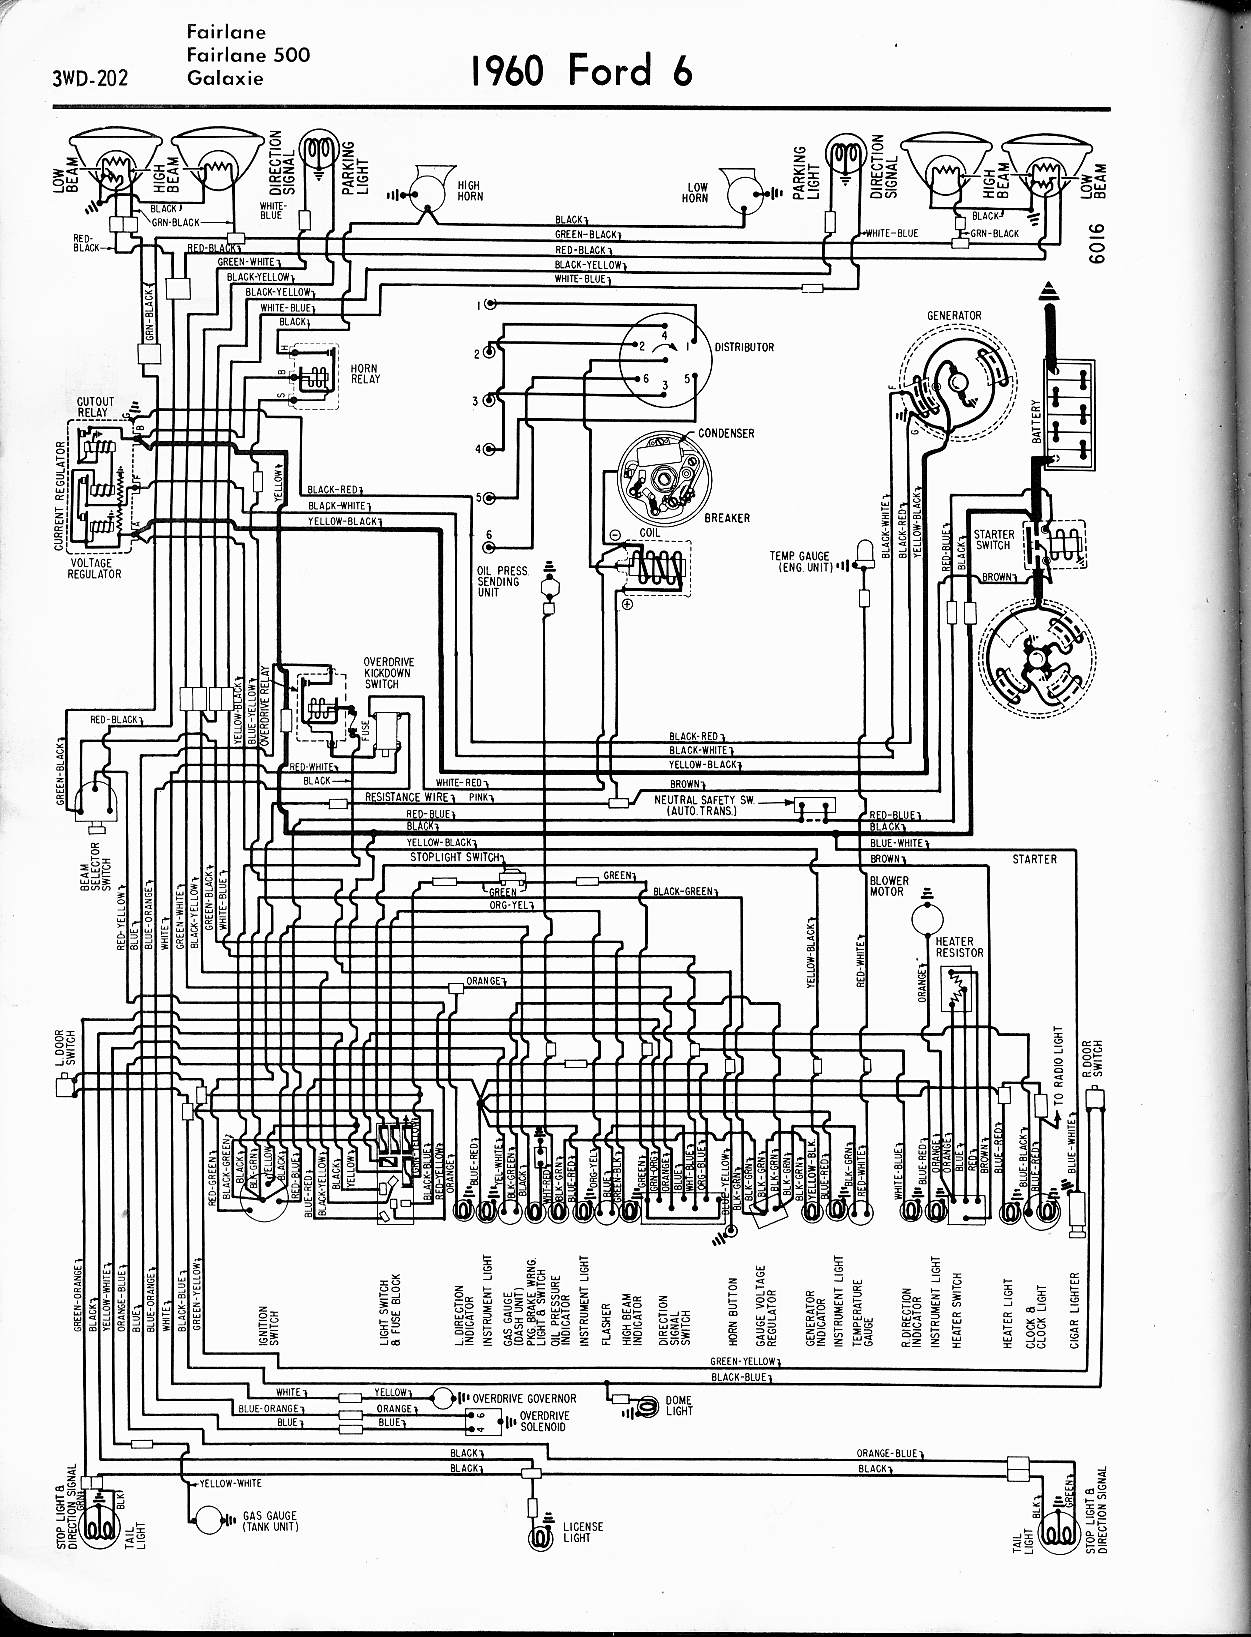 1963 ford f100 wiring diagram database er for courier management system 57 65 diagrams